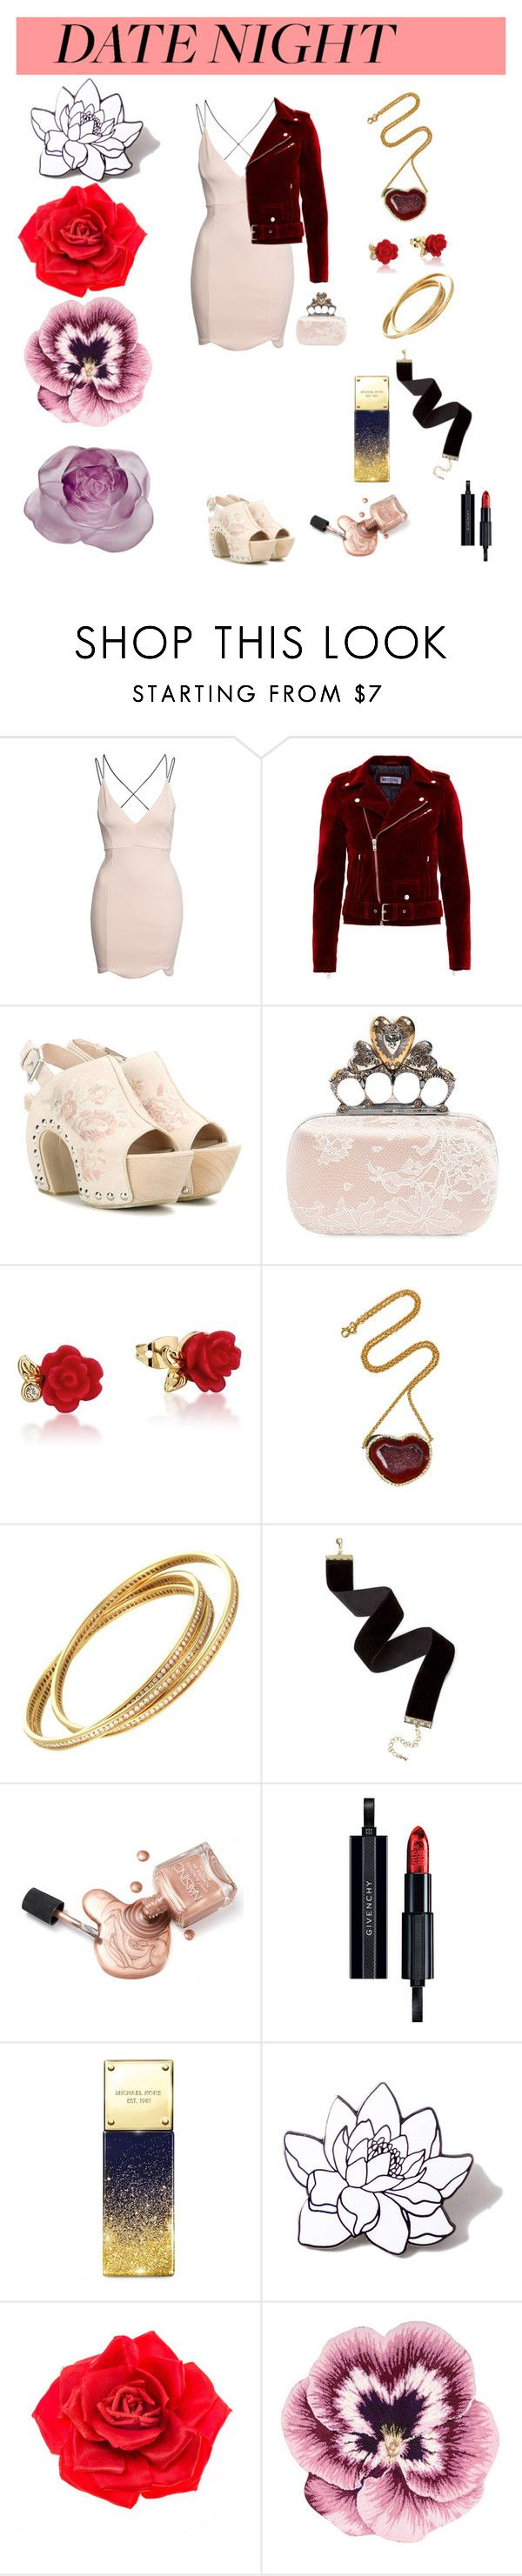 """""""Untitled #801"""" by spectrearcane ❤ liked on Polyvore featuring Boohoo, Alexander McQueen, Disney, Kimberly McDonald, Givenchy, Michael Kors, PINTRILL, Johnny Loves Rosie, Nourison and Daum"""